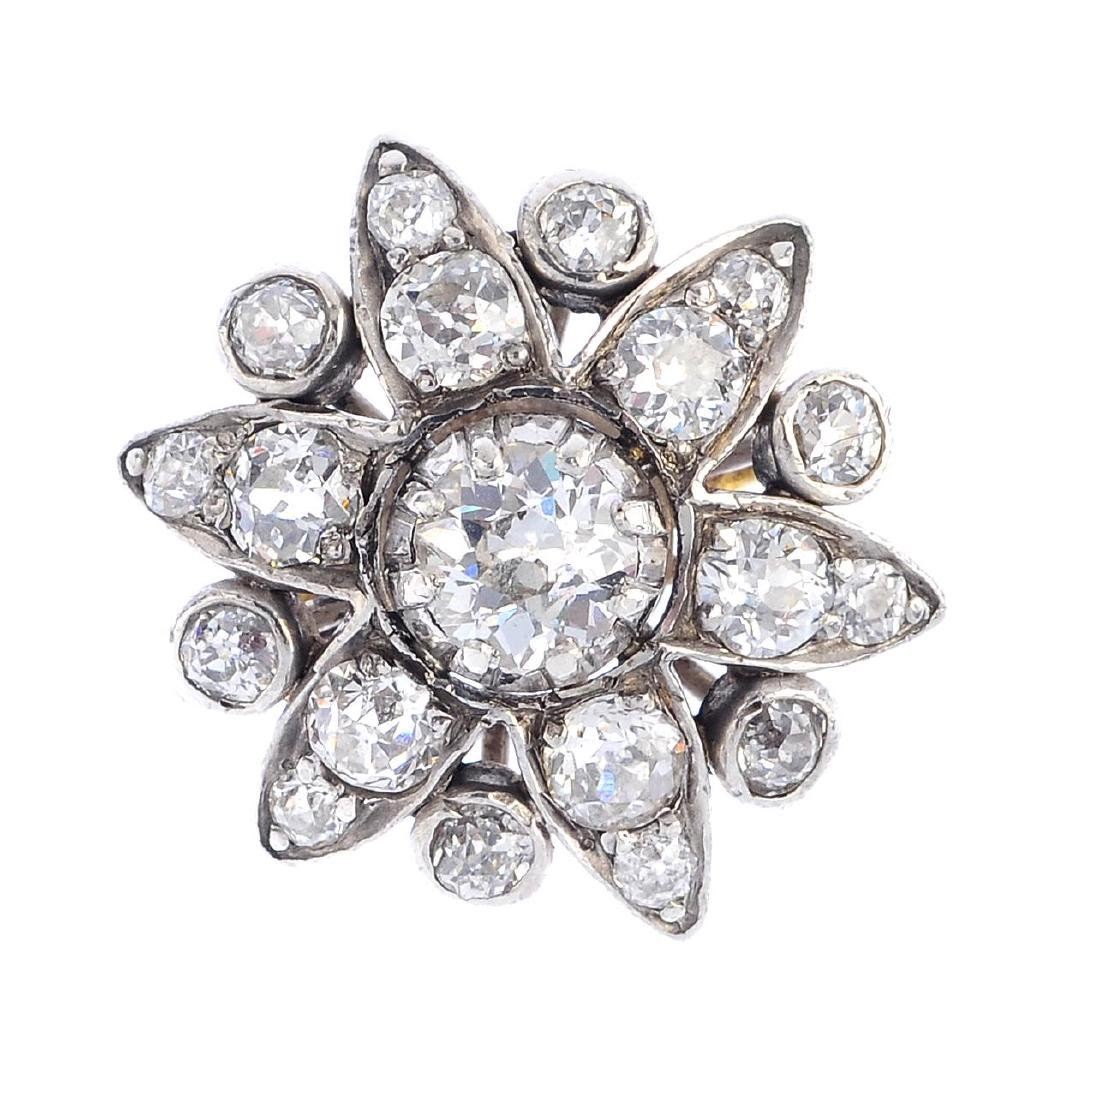 An 18ct gold diamond floral cluster ring. The old-cut